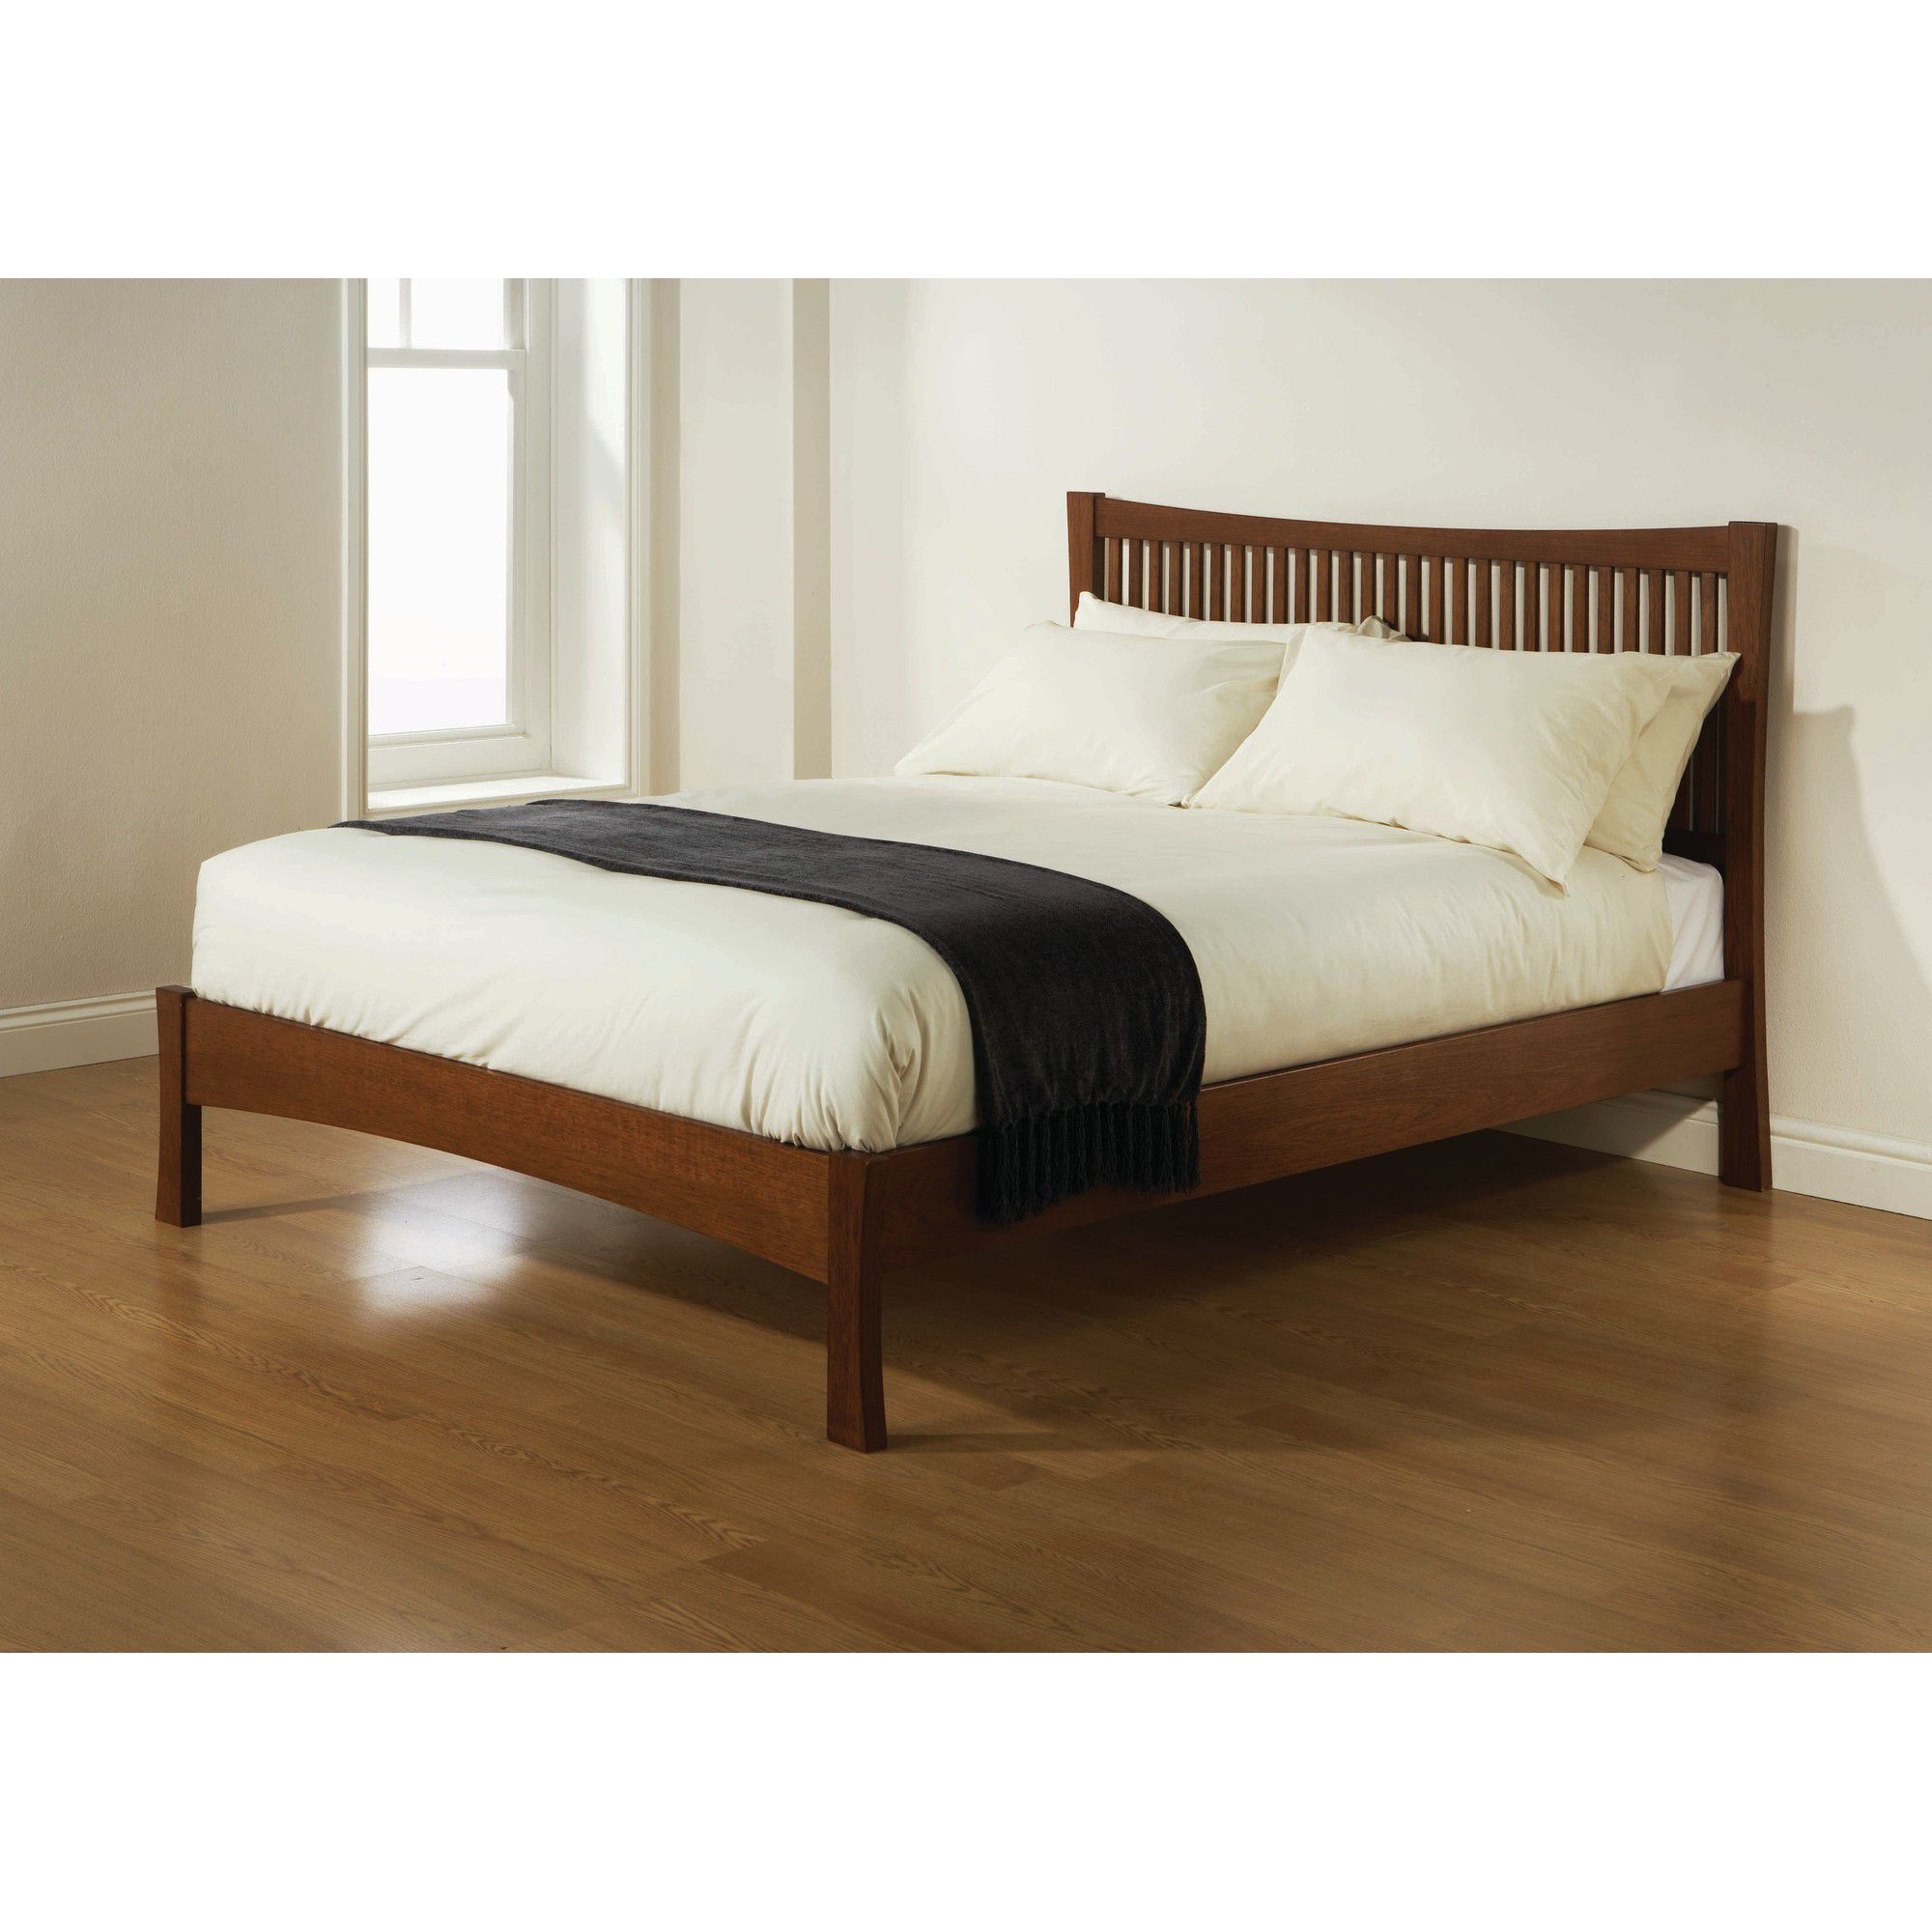 Elements Orient Bed - Double at Tesco Direct